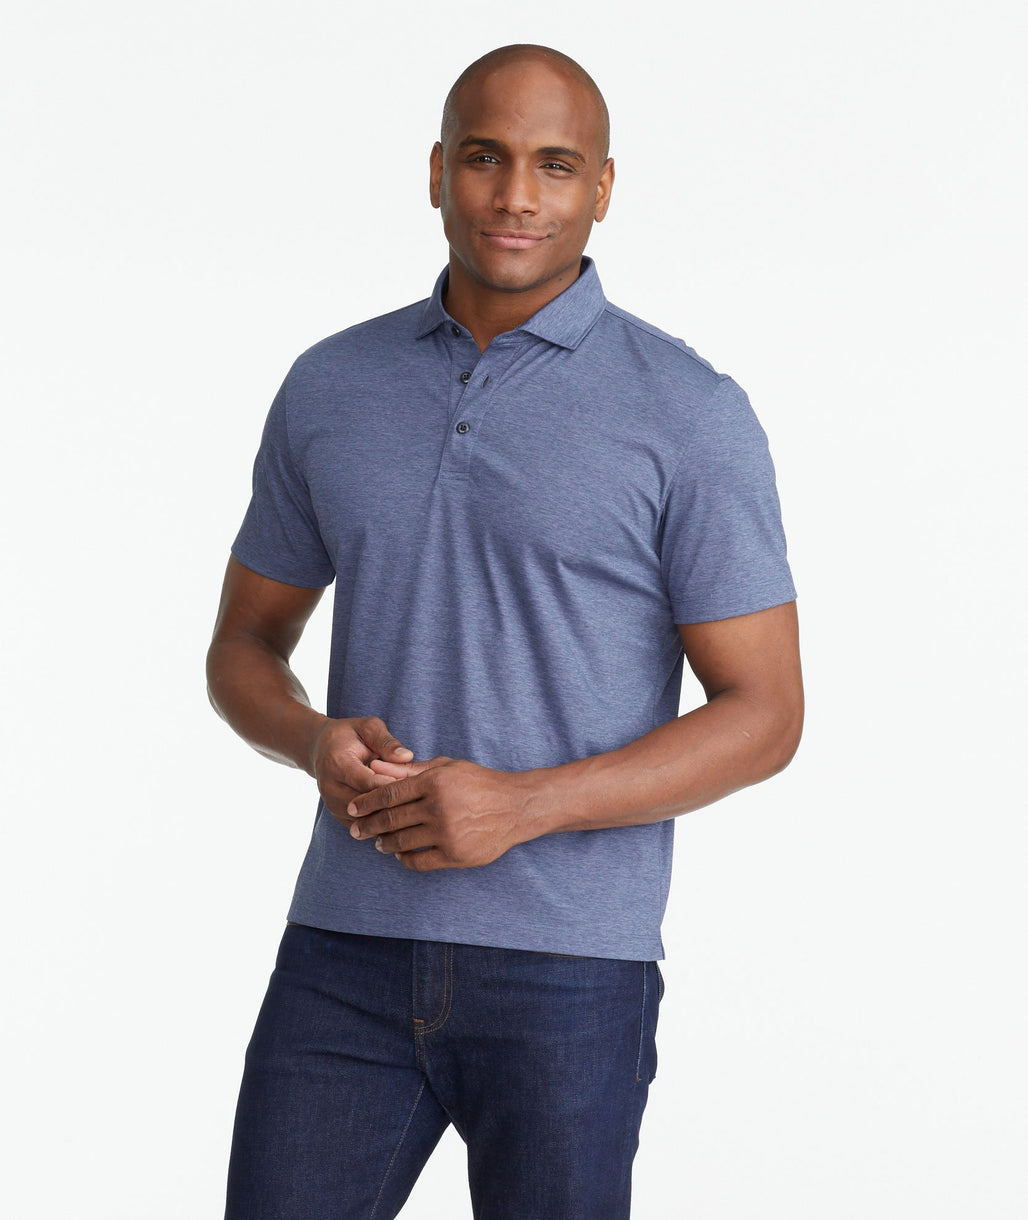 A model wearing a Navy Luxe Wrinkle-Free Pique Polo